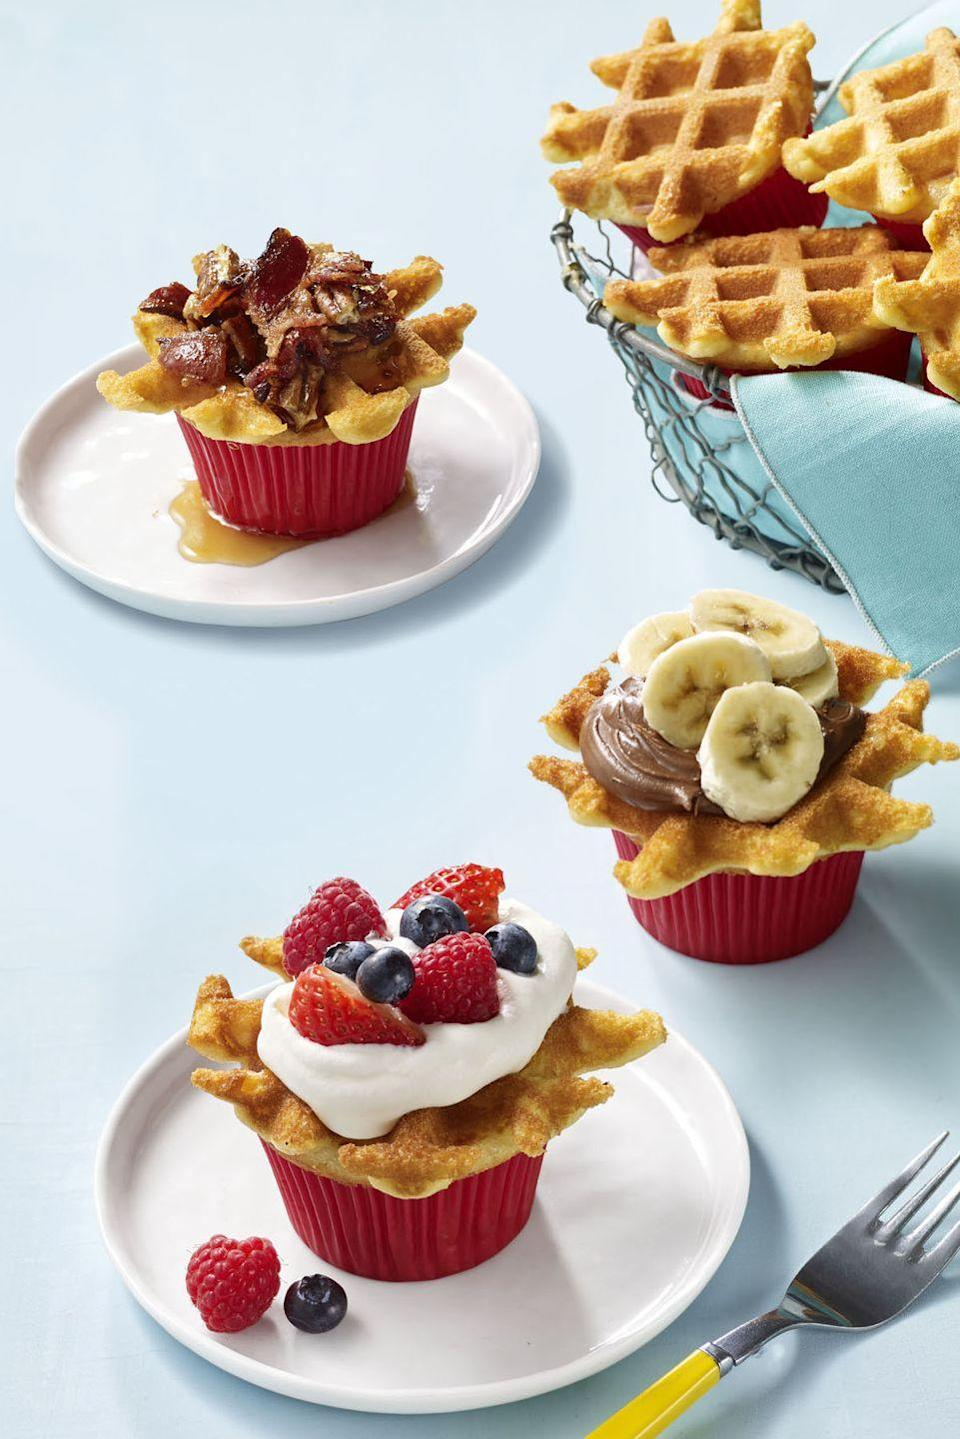 """<p>Top a classic cupcake with a waffle slice for the perfect post-brunch treat.</p><p><strong><a href=""""https://www.womansday.com/food-recipes/food-drinks/recipes/a57925/wafflecakes-recipe/"""" rel=""""nofollow noopener"""" target=""""_blank"""" data-ylk=""""slk:Get the recipe."""" class=""""link rapid-noclick-resp"""">Get the recipe.</a></strong></p>"""